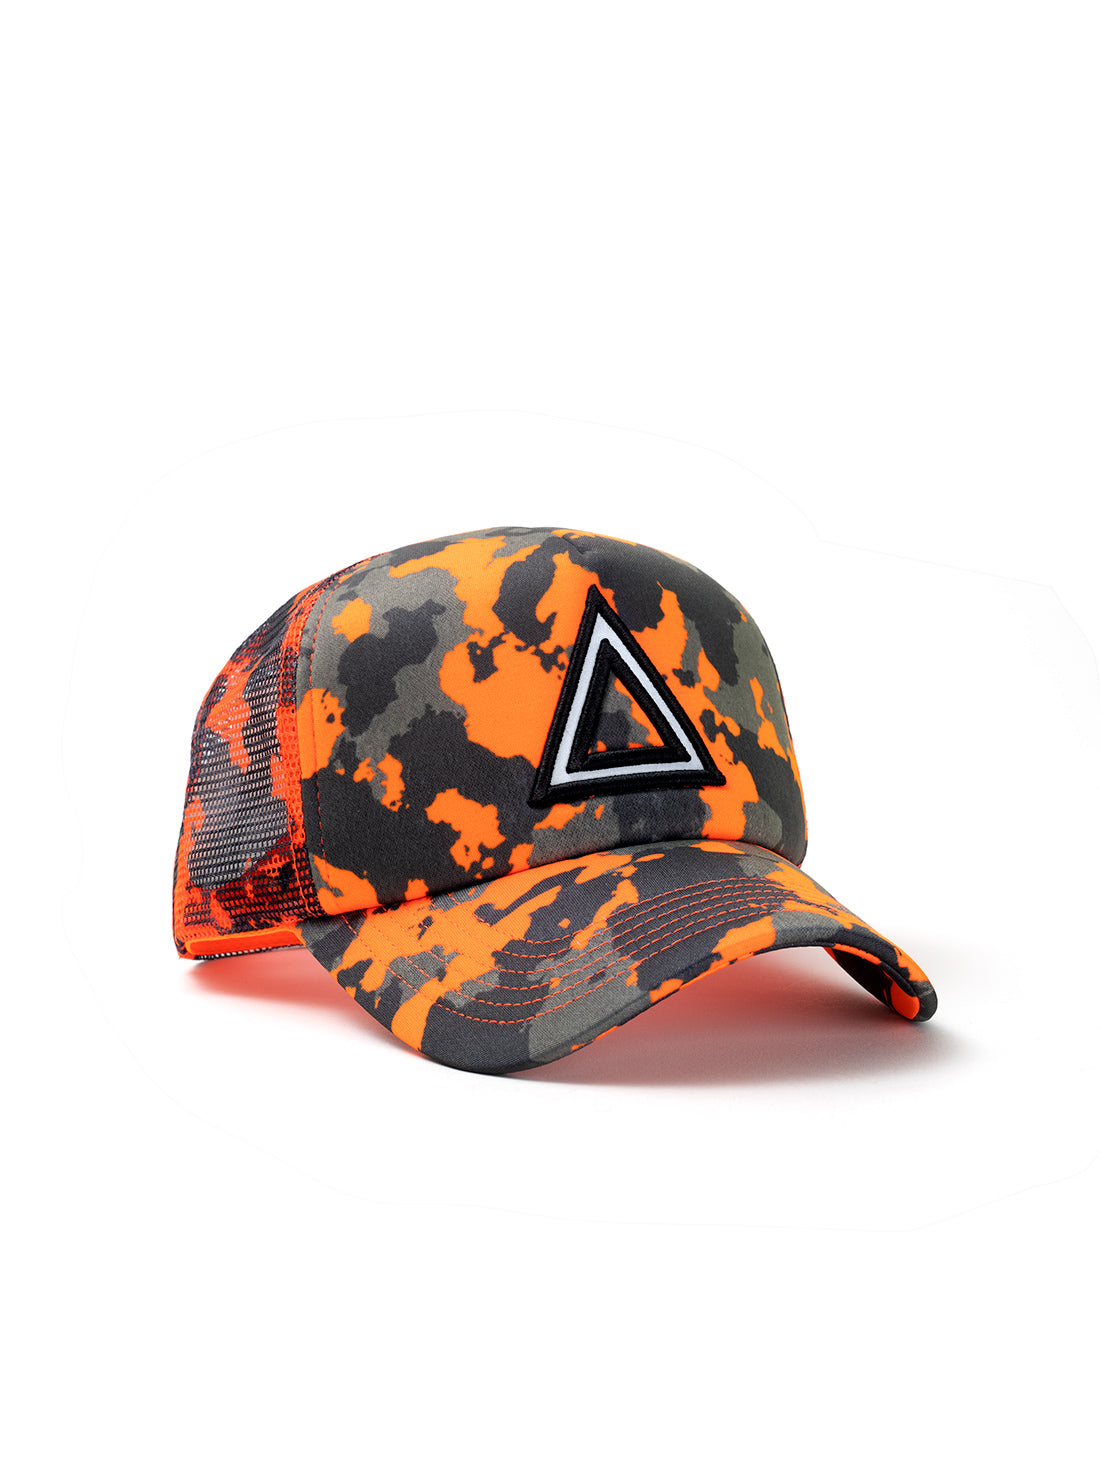 ORANGE NEON TRUCKER TRIANGULO - Triangulo Swag